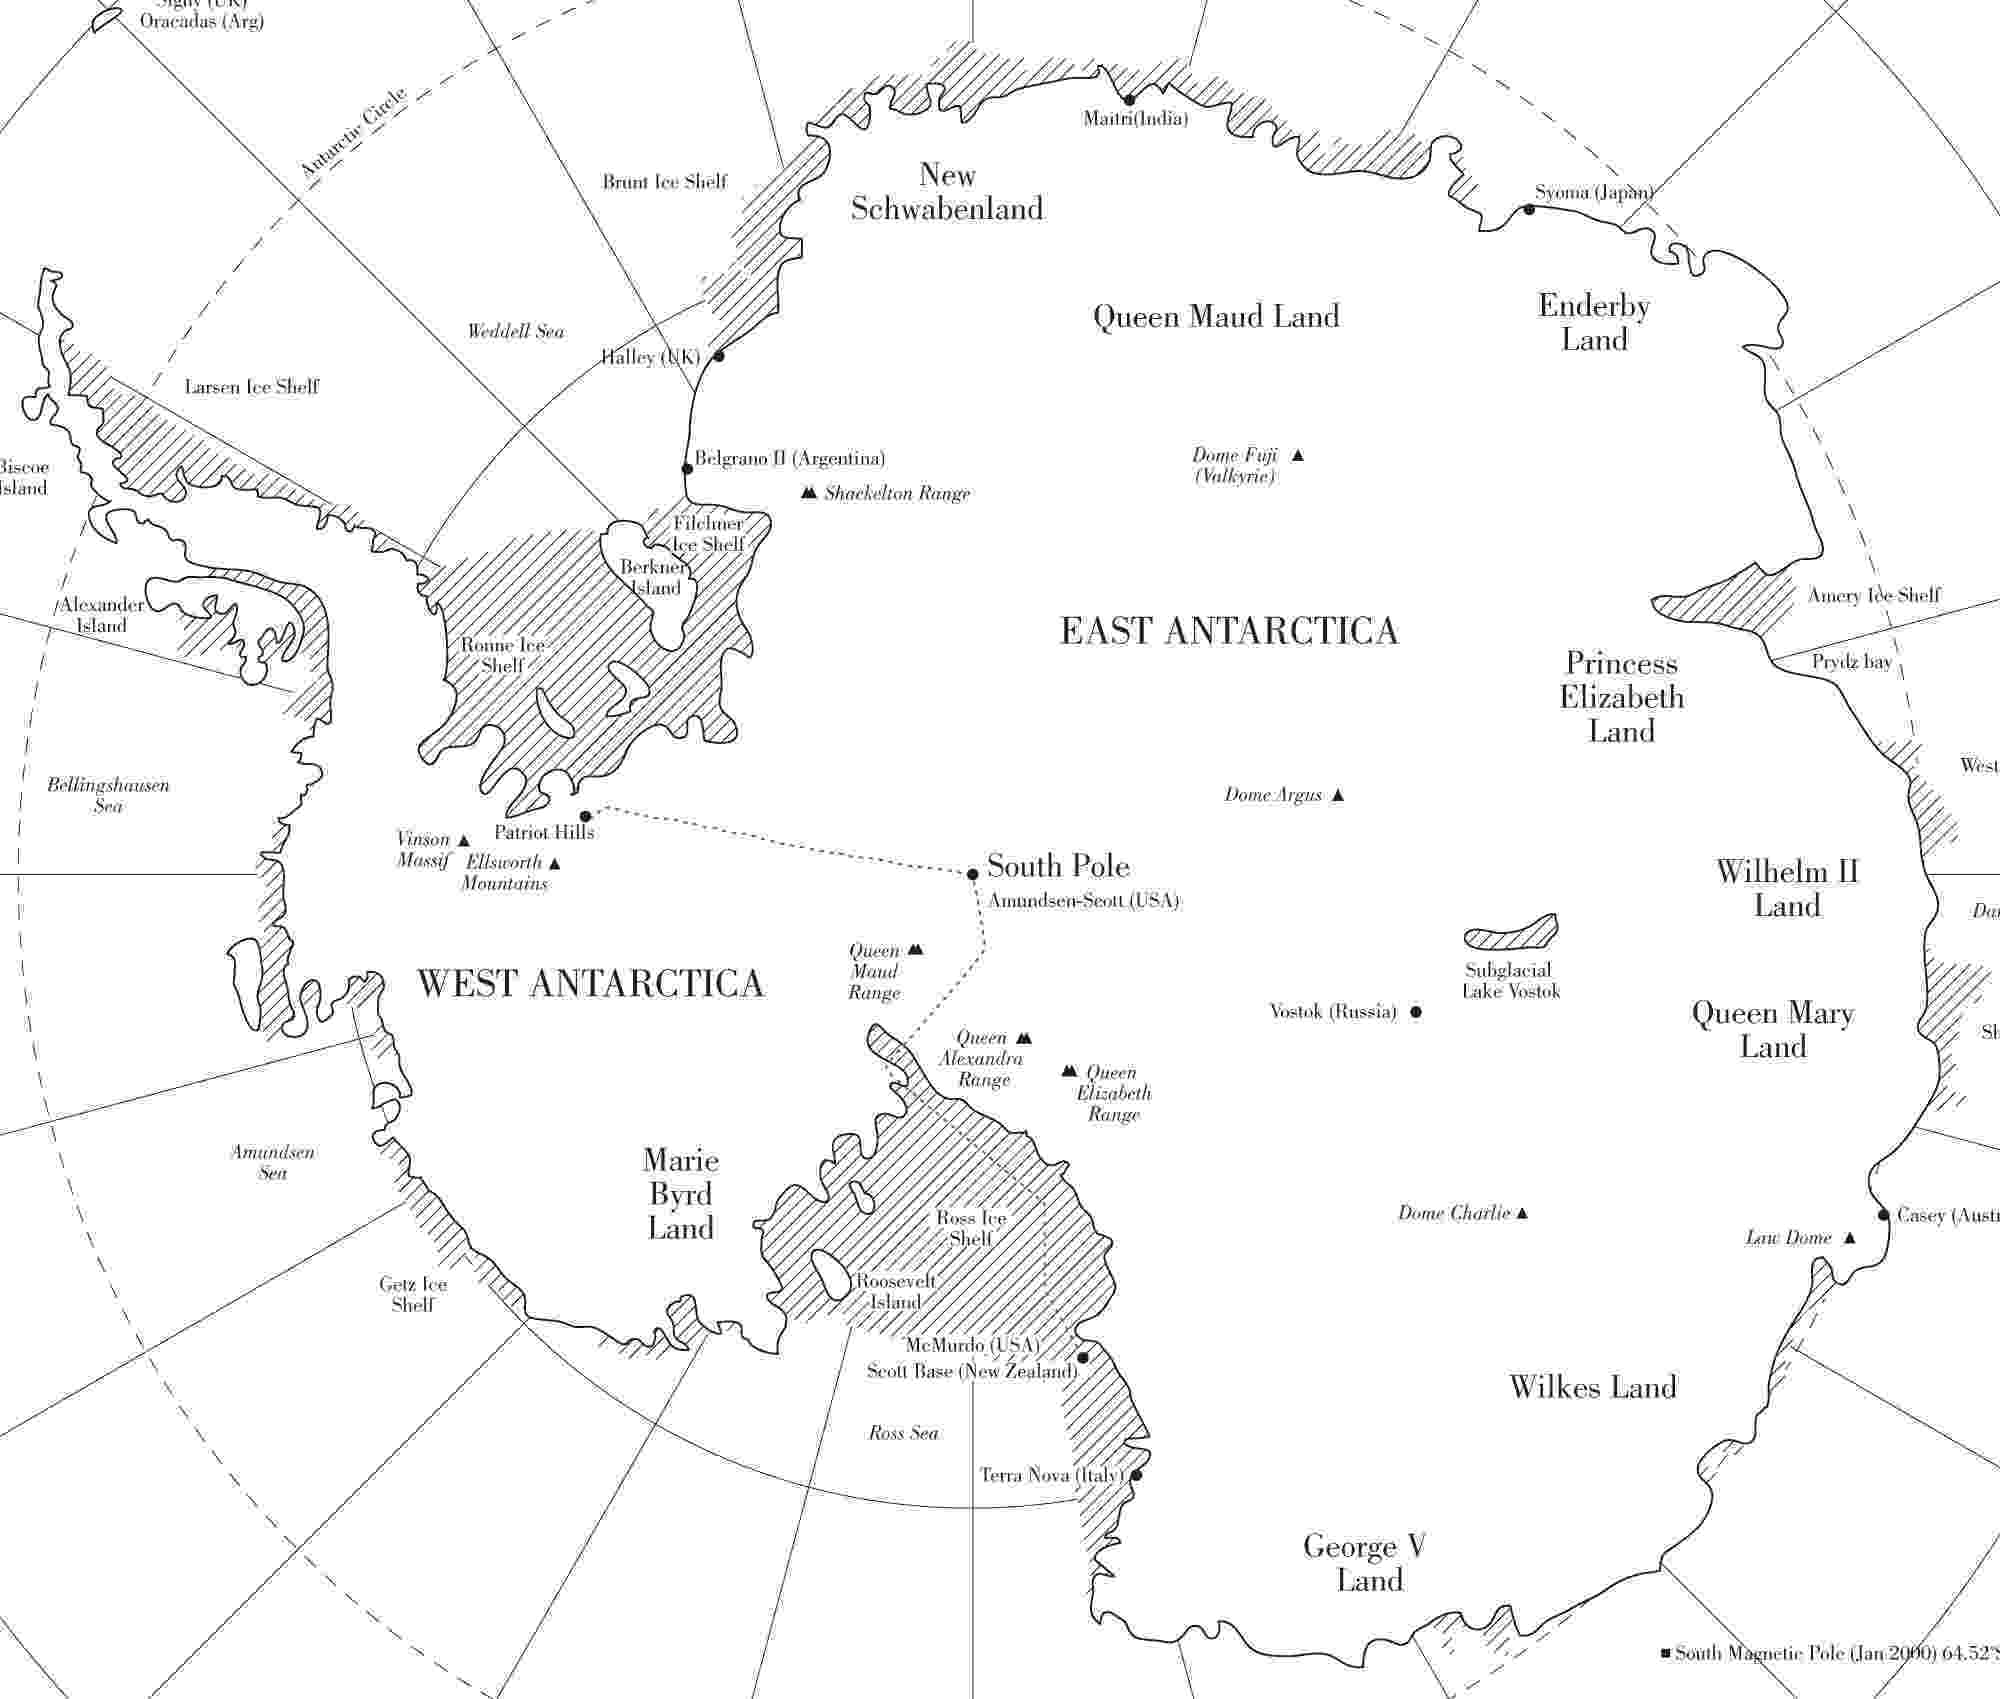 antarctica coloring page antarctica coloring pages to download and print for free coloring antarctica page